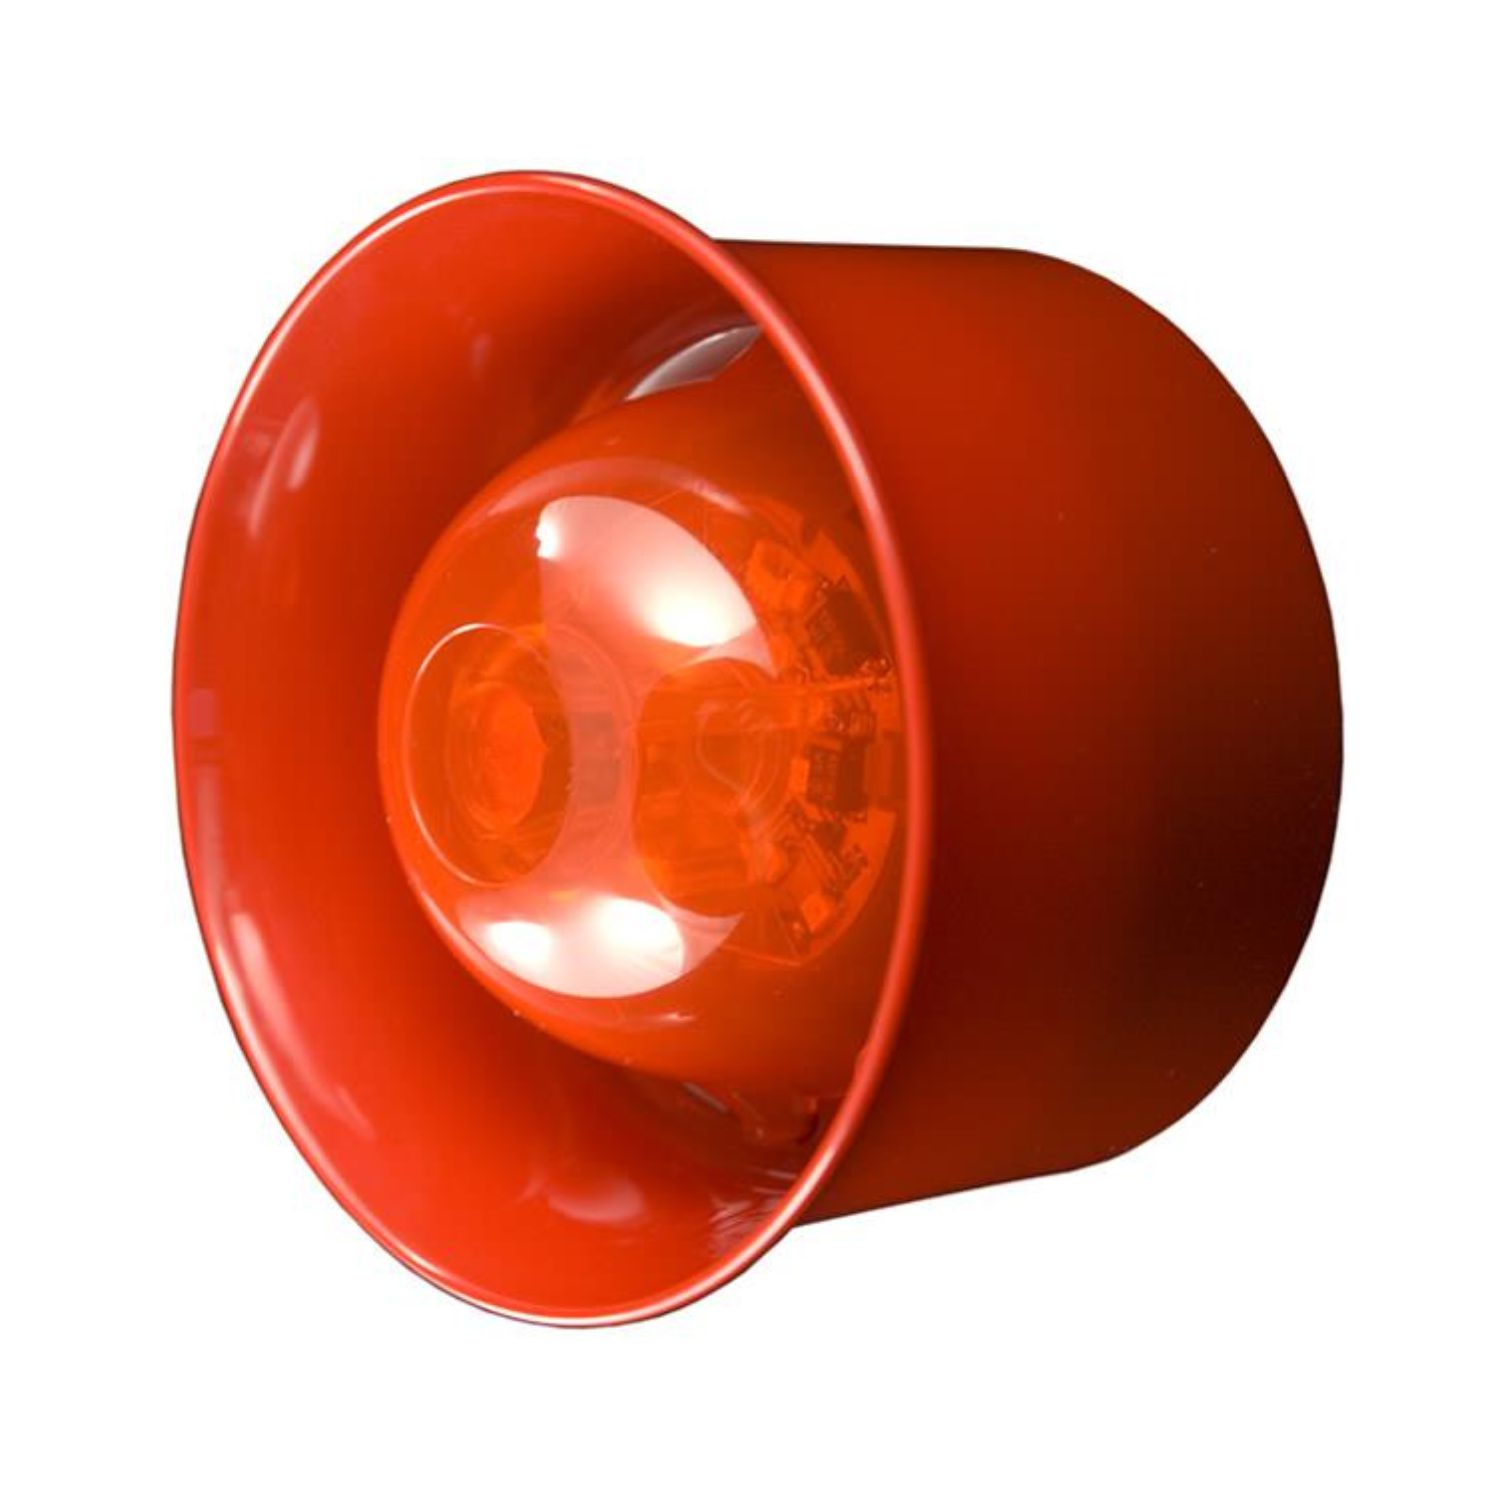 CHQ-WSB Wall Sounder Beacon - red case, red lens